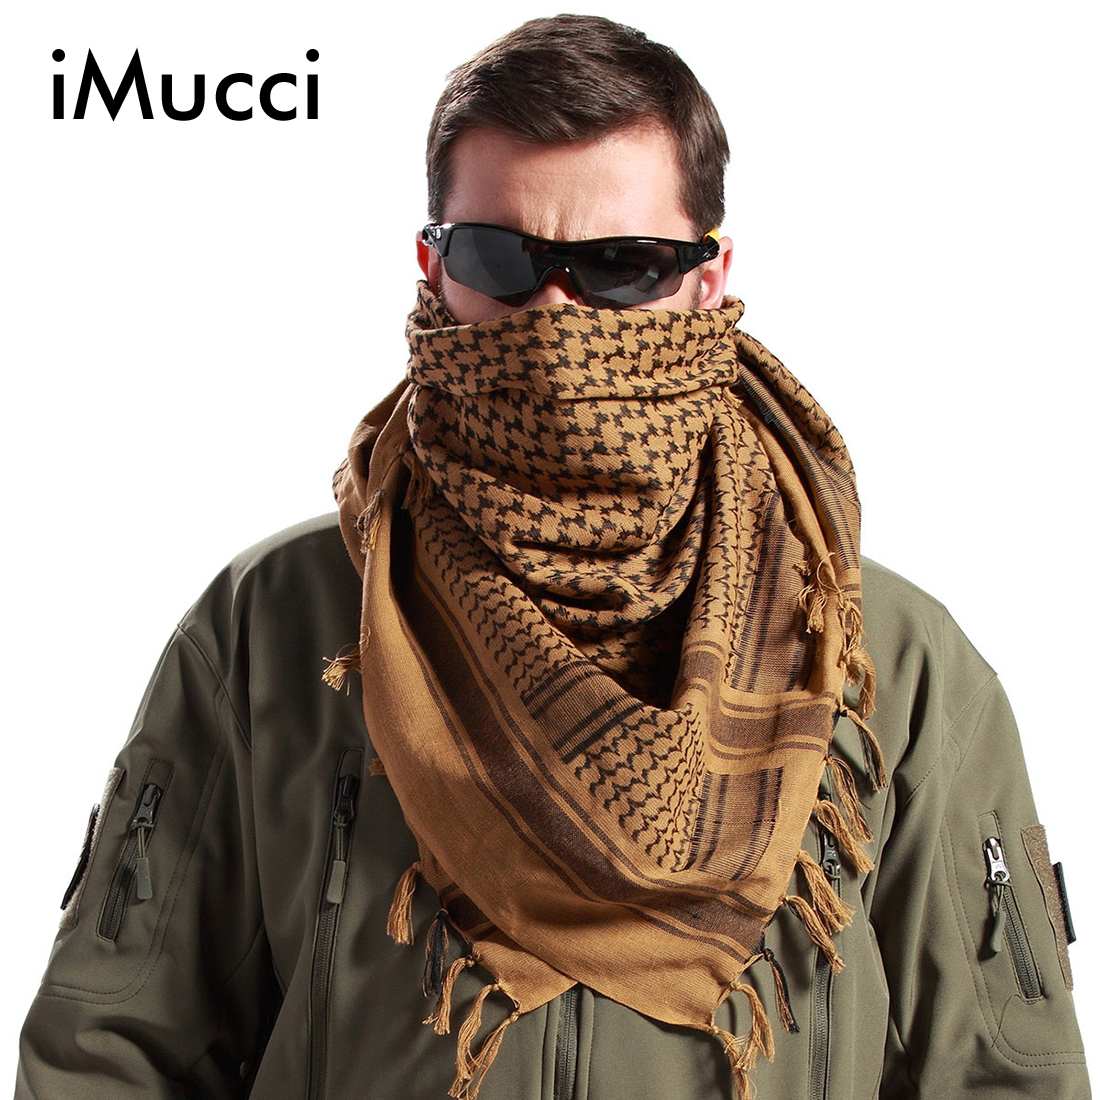 036d74672f31a iMucci Men Winter Scarf Military Windproof Scarf Muslim Hijab Shemagh  Tactical Shawl Arabic Keffiyeh Cotton Gift For Women Men-in Men s Scarves  from Apparel ...